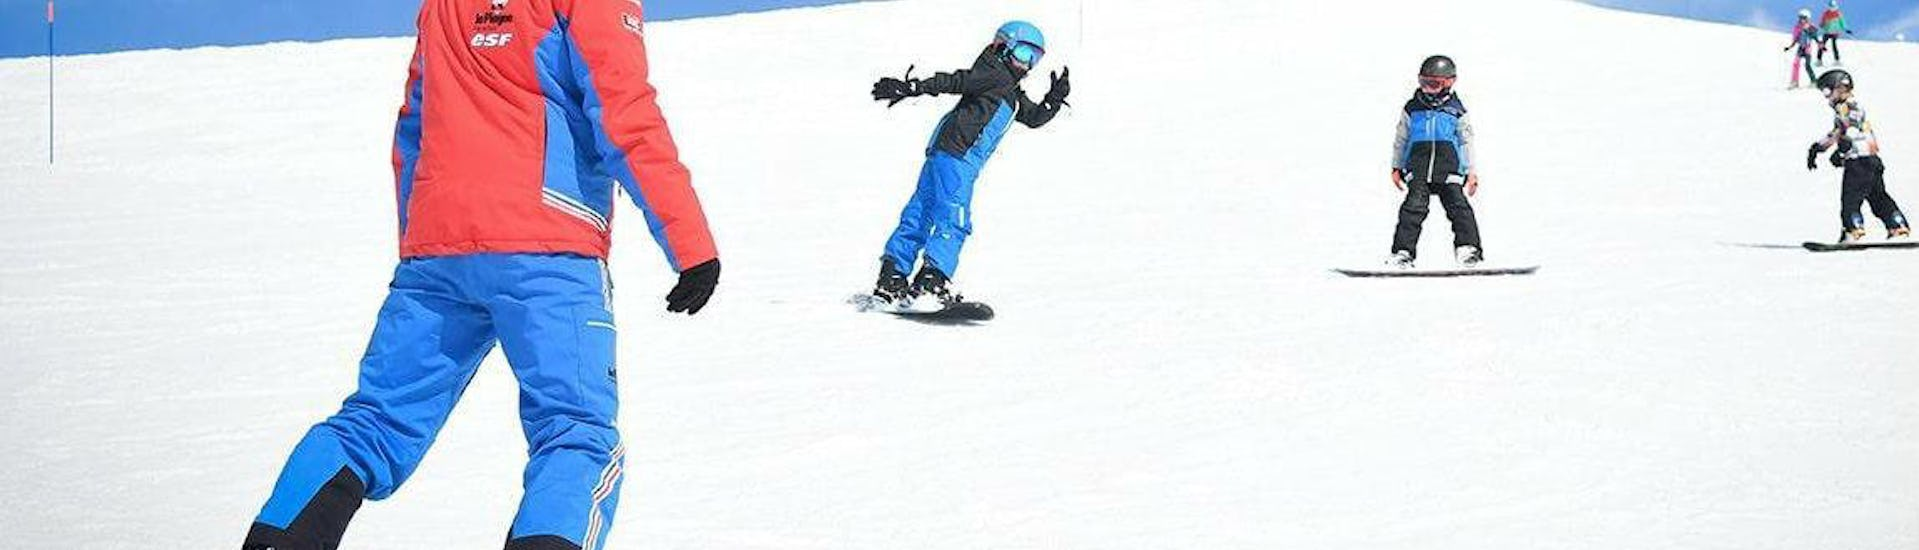 Snowboard Lessons for Kids & Adults - High Season